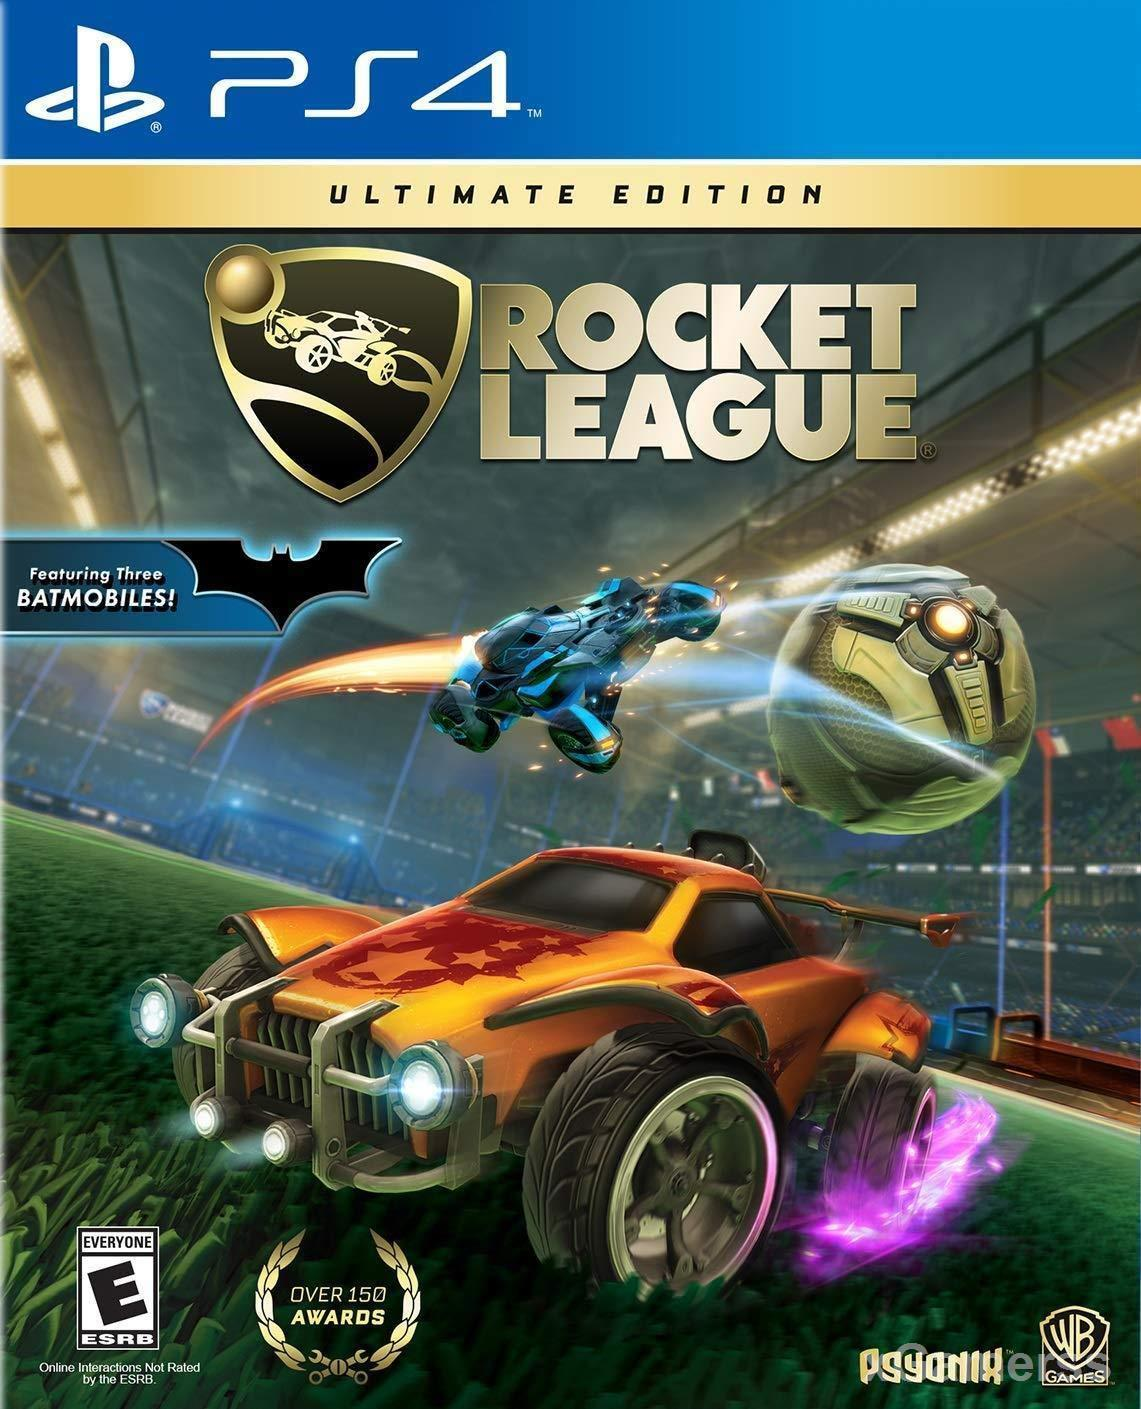 Rocket League - a combination of outgoing cars playing soccer games